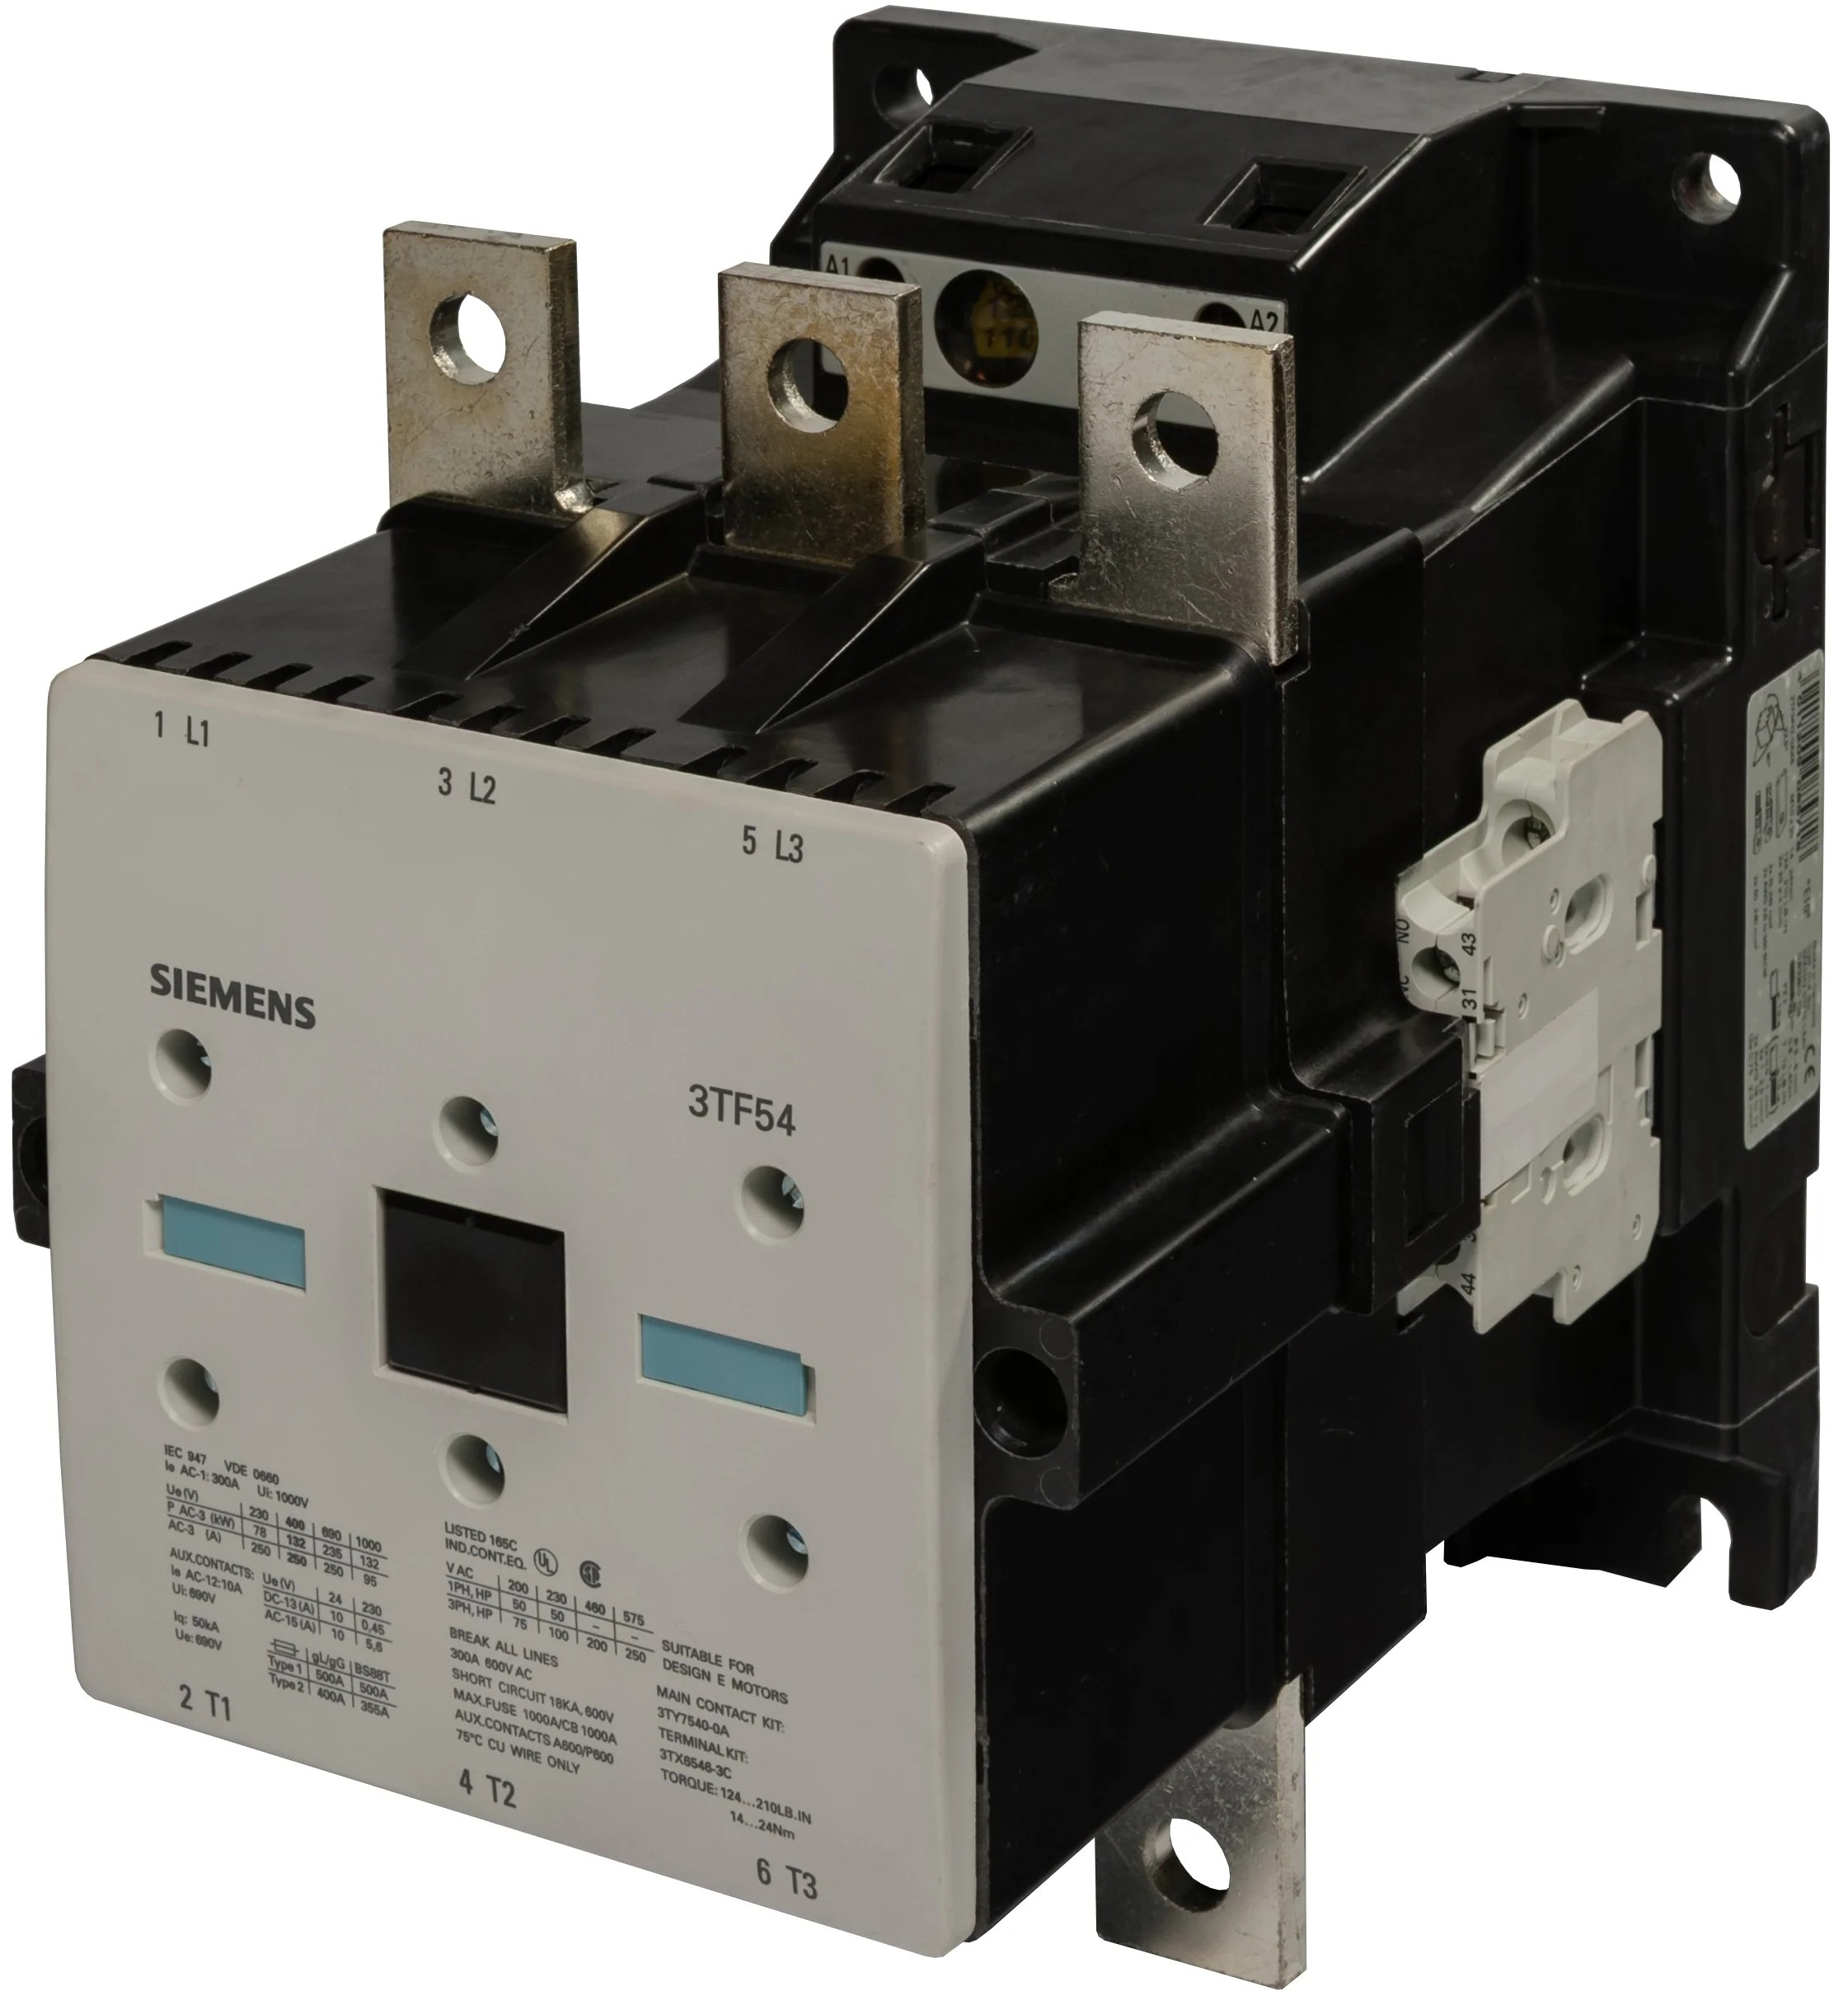 transistor contactor wiring diagram with timer stage directions person 3tf5422 0a contactors motor starters siemens